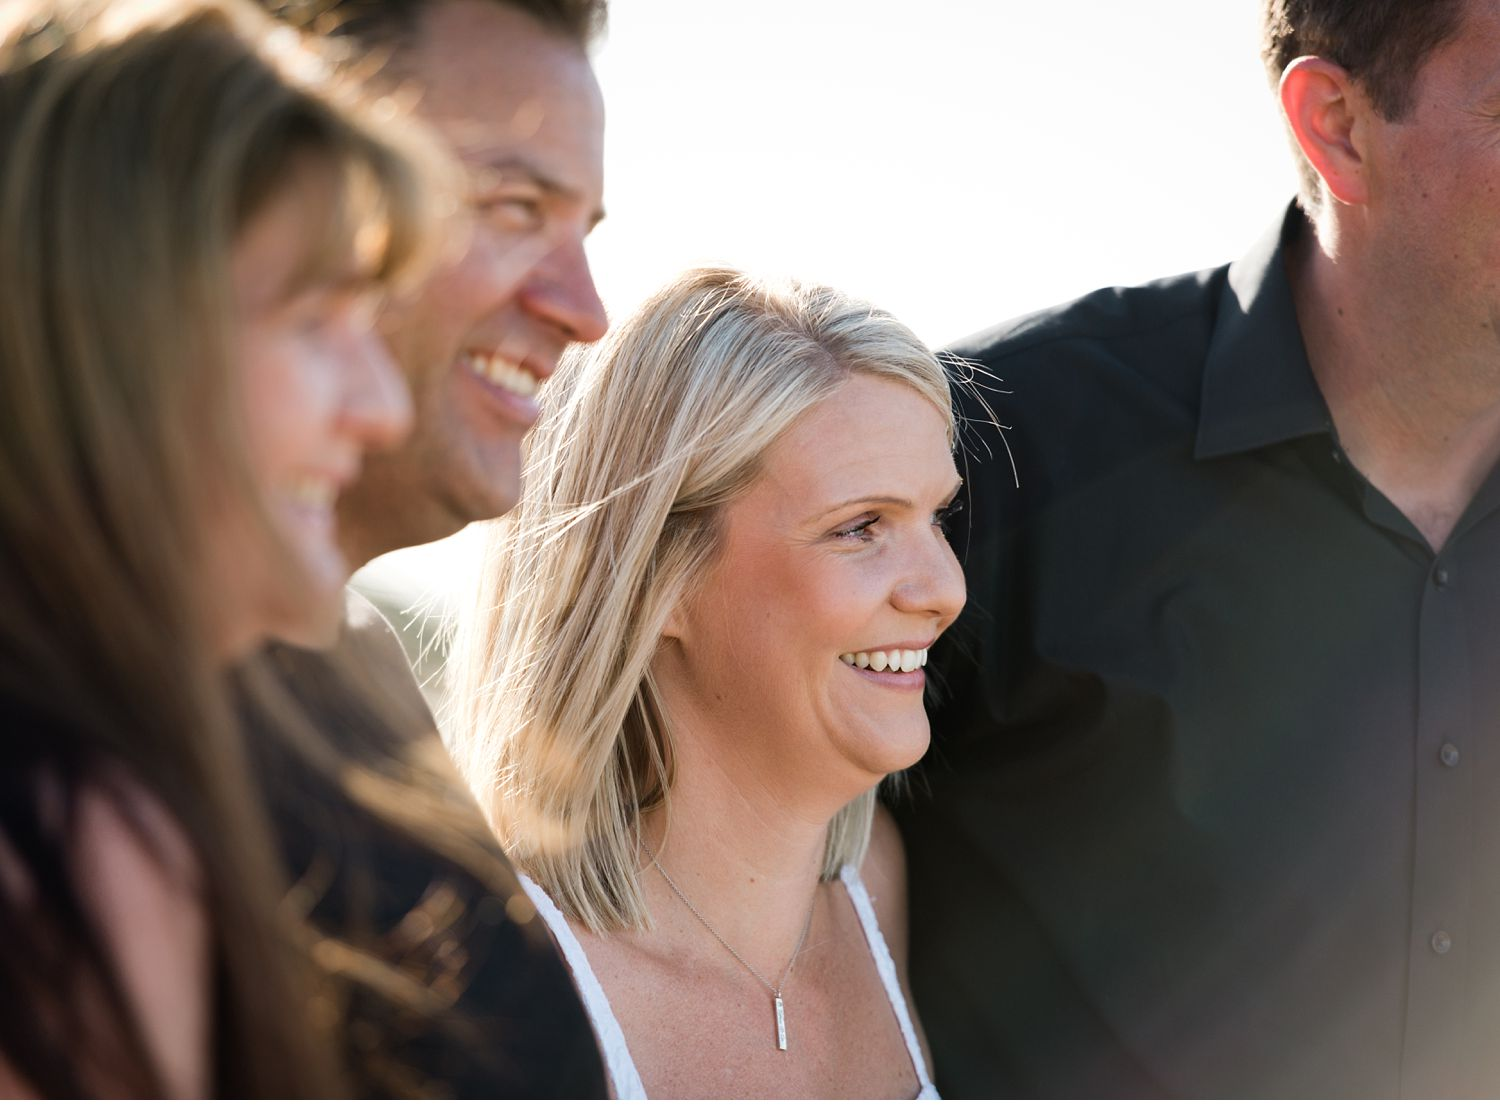 bec-stewart-photography-extended-family-photography-session-melbourne-australia-city-of-casey-19.jpg